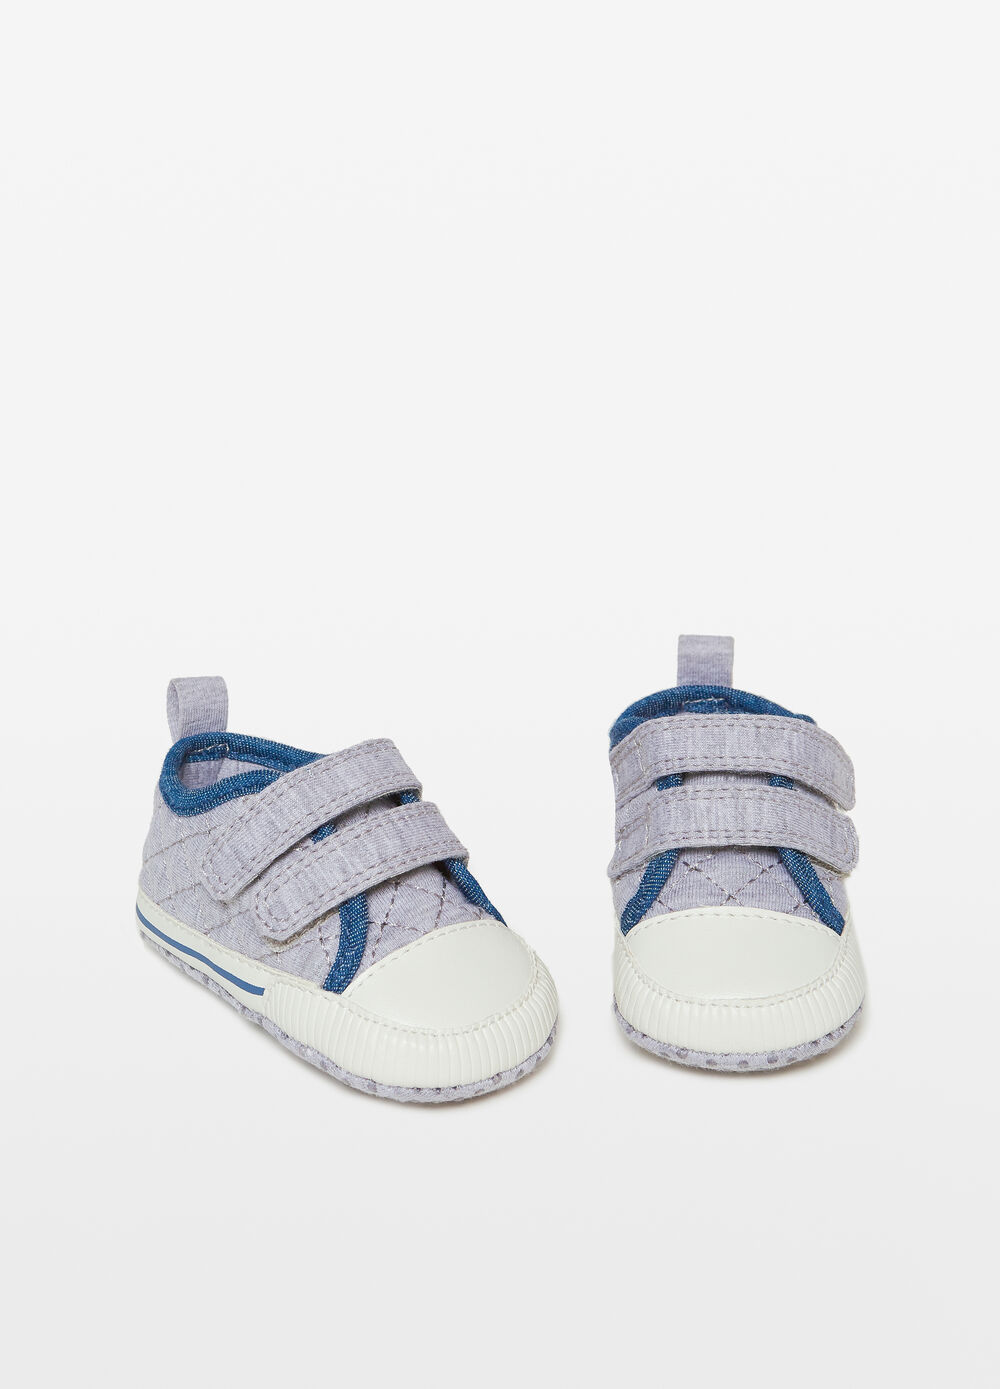 Sneakers with slip-proof soles and Velcro fastening